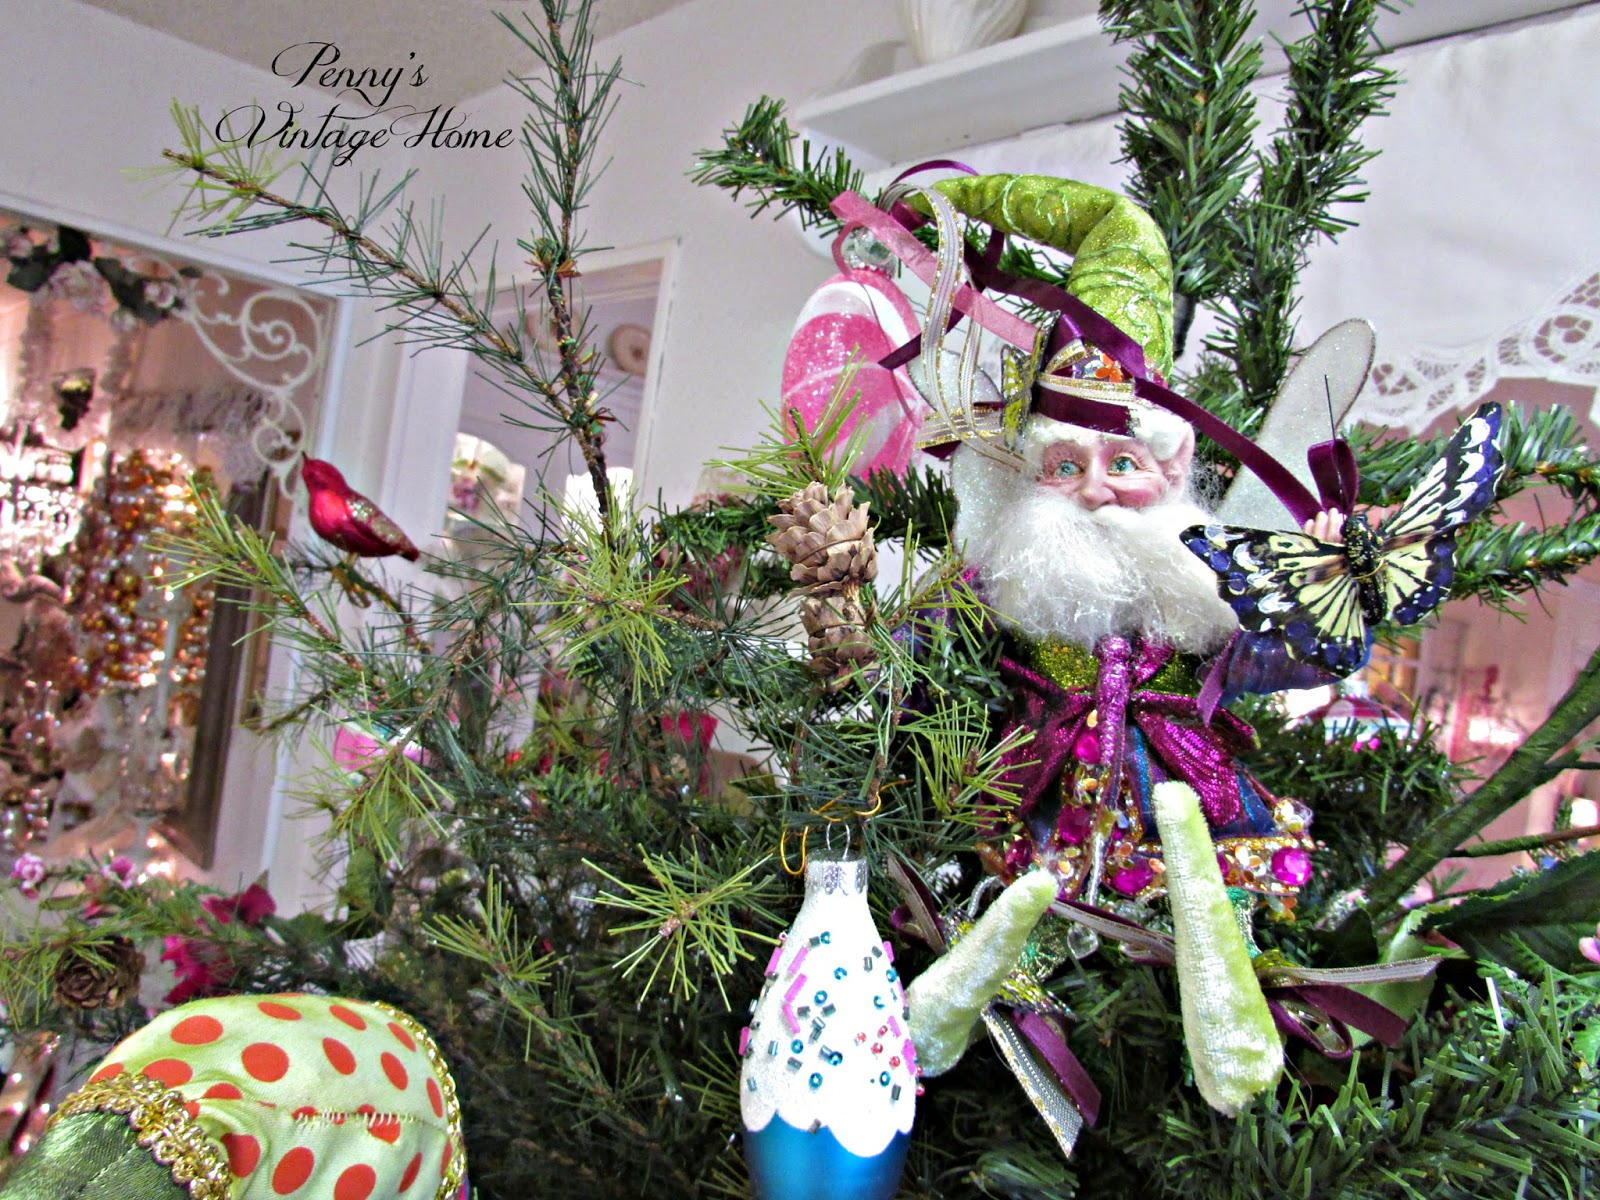 Fairy christmas ornaments - The Fairy Tale Christmas Tree Is Sitting On An Antique Wooden Wheel Chair I Put A Rose Wreath On Both Of The Wheels And Have A Christmas Train Around The